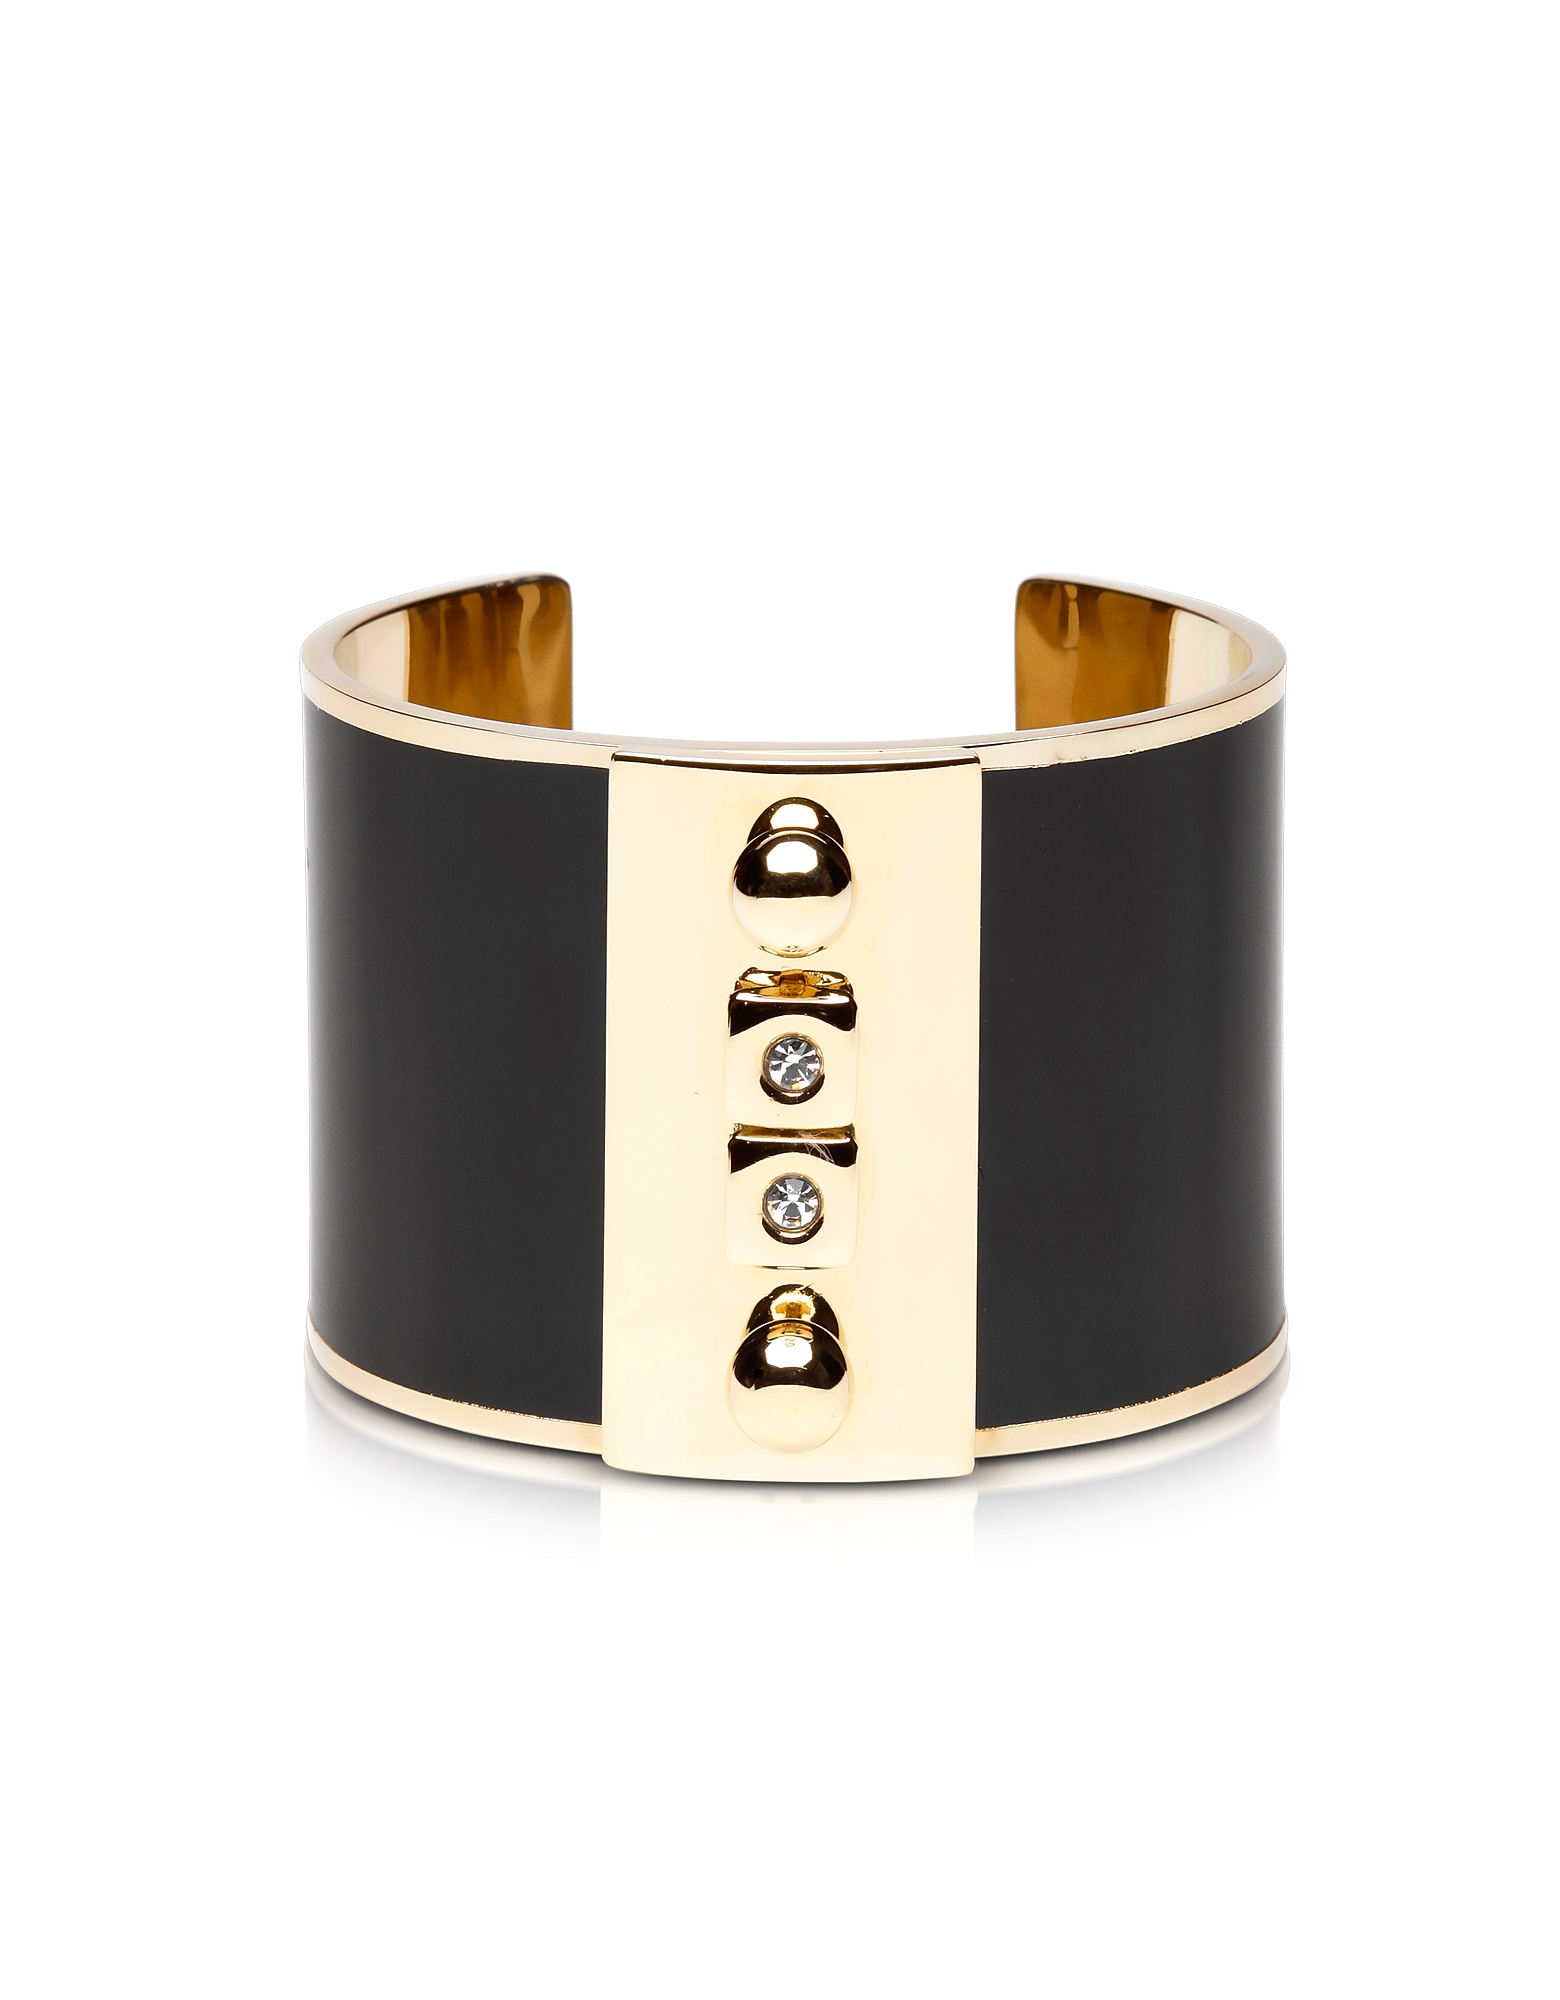 Pluma Bracelets, Golden Brass and Black Enamel Cuff